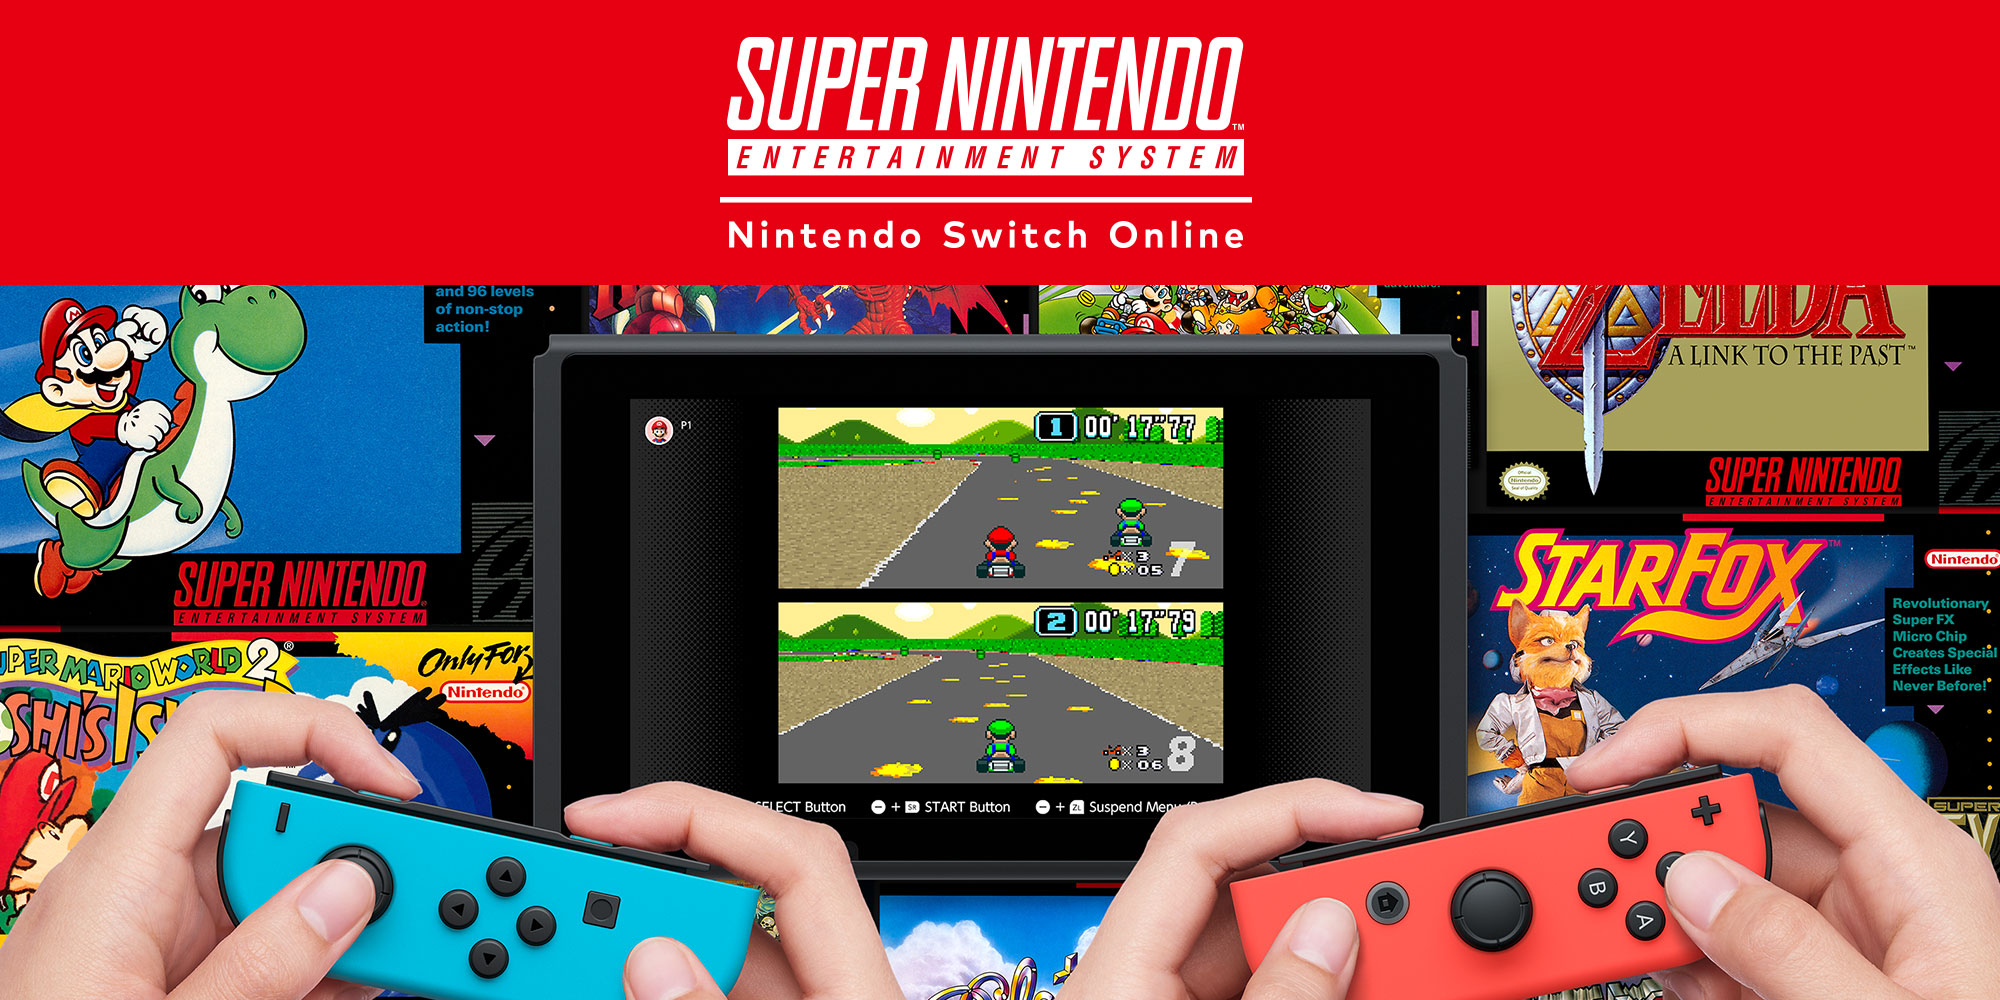 Super Nintendo Entertainment System Nintendo Switch Online Nintendo Switch Download Software Games Nintendo